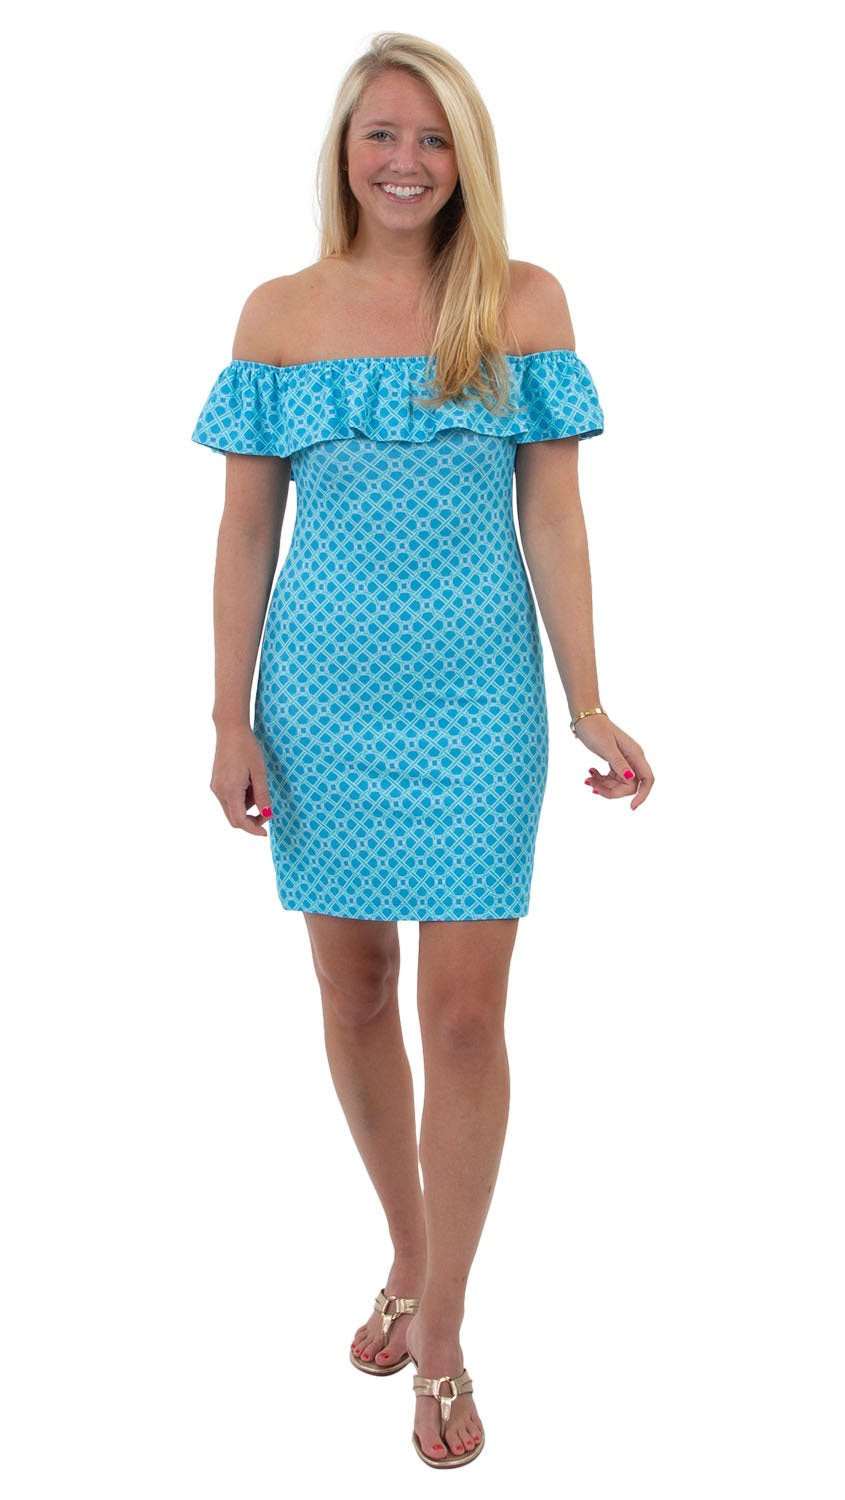 Shoreline Dress in Blue Bamboozled by Sailor Sailor